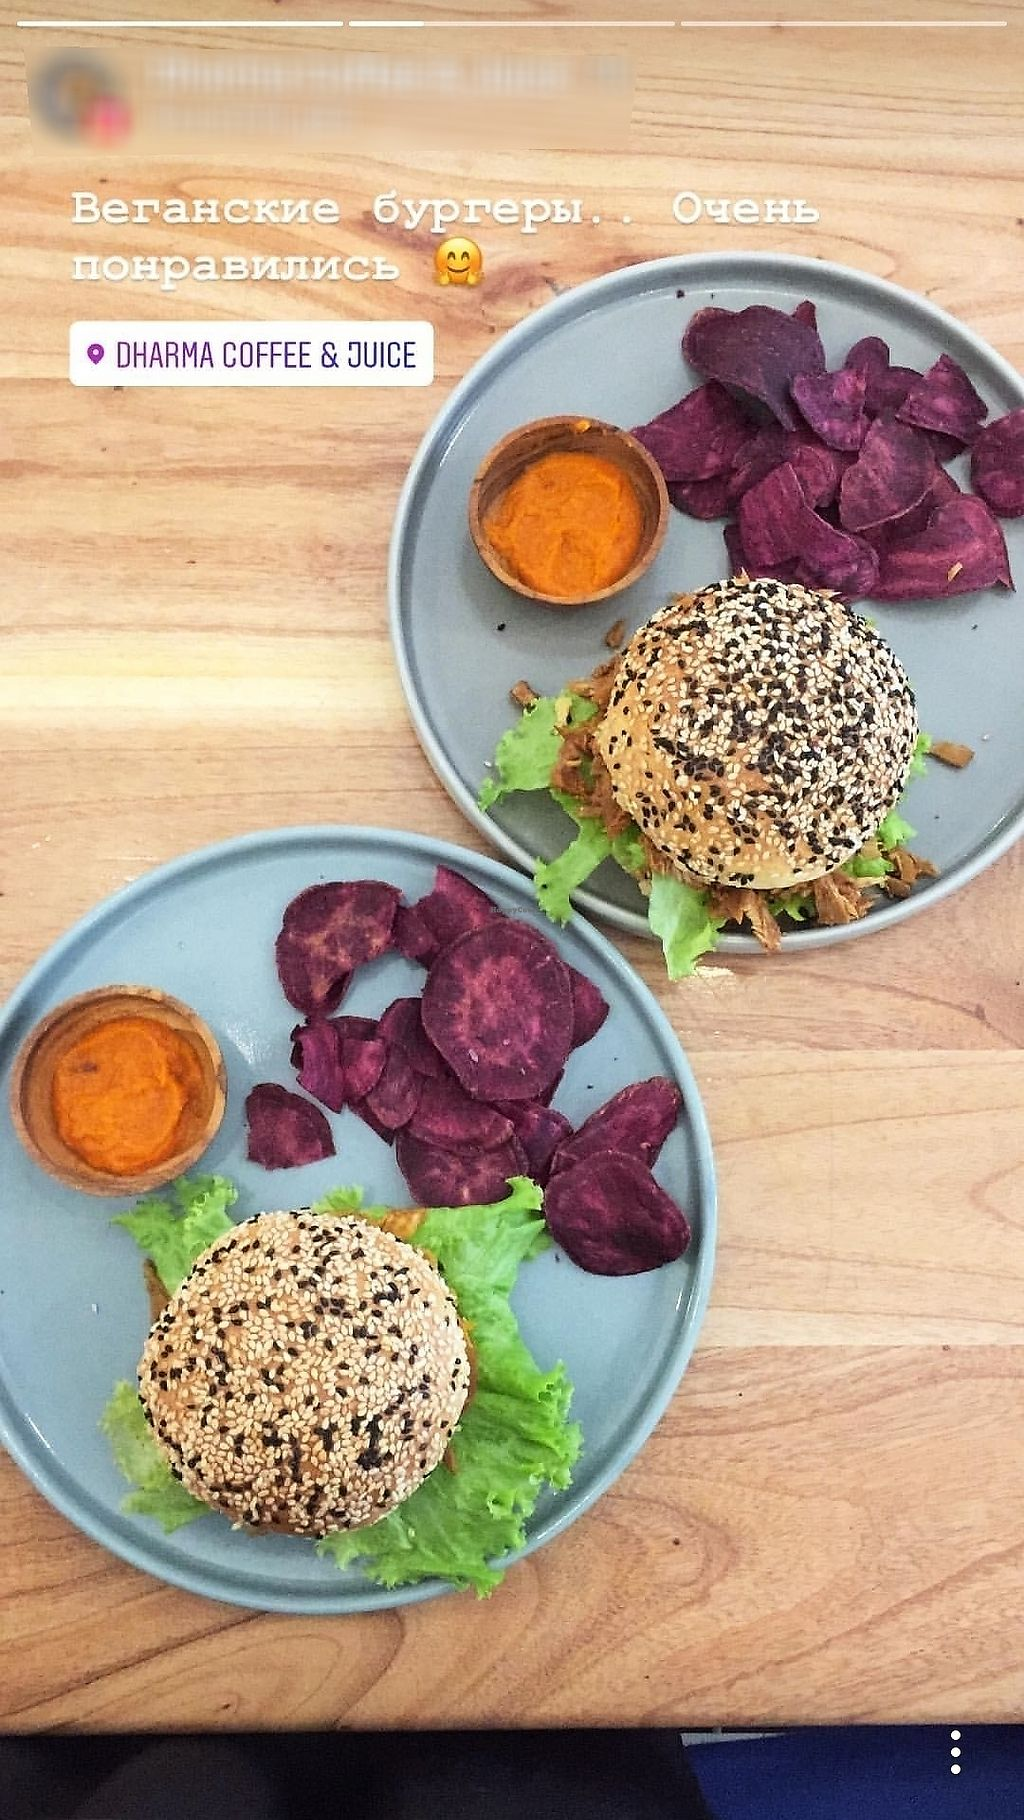 """Photo of Dharma Coffee & Juice  by <a href=""""/members/profile/TorkisNasoetion"""">TorkisNasoetion</a> <br/>Vegan Jack Burger <br/> March 31, 2018  - <a href='/contact/abuse/image/115176/378592'>Report</a>"""